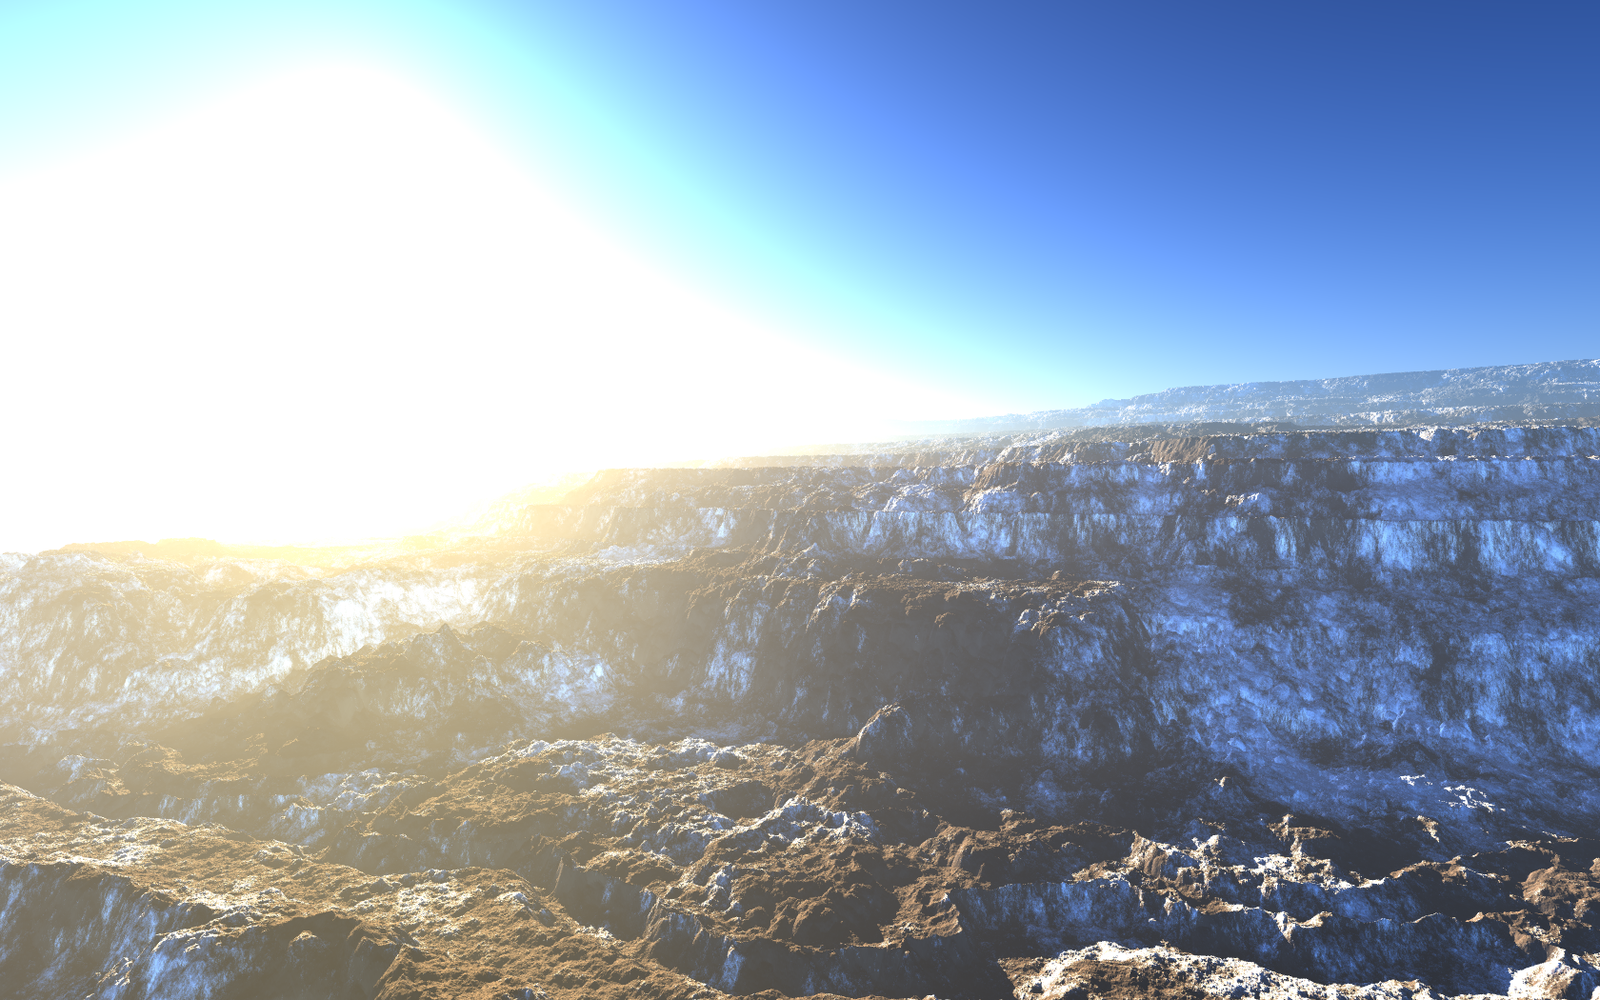 A canyon landscape with snow. by greenhybrid